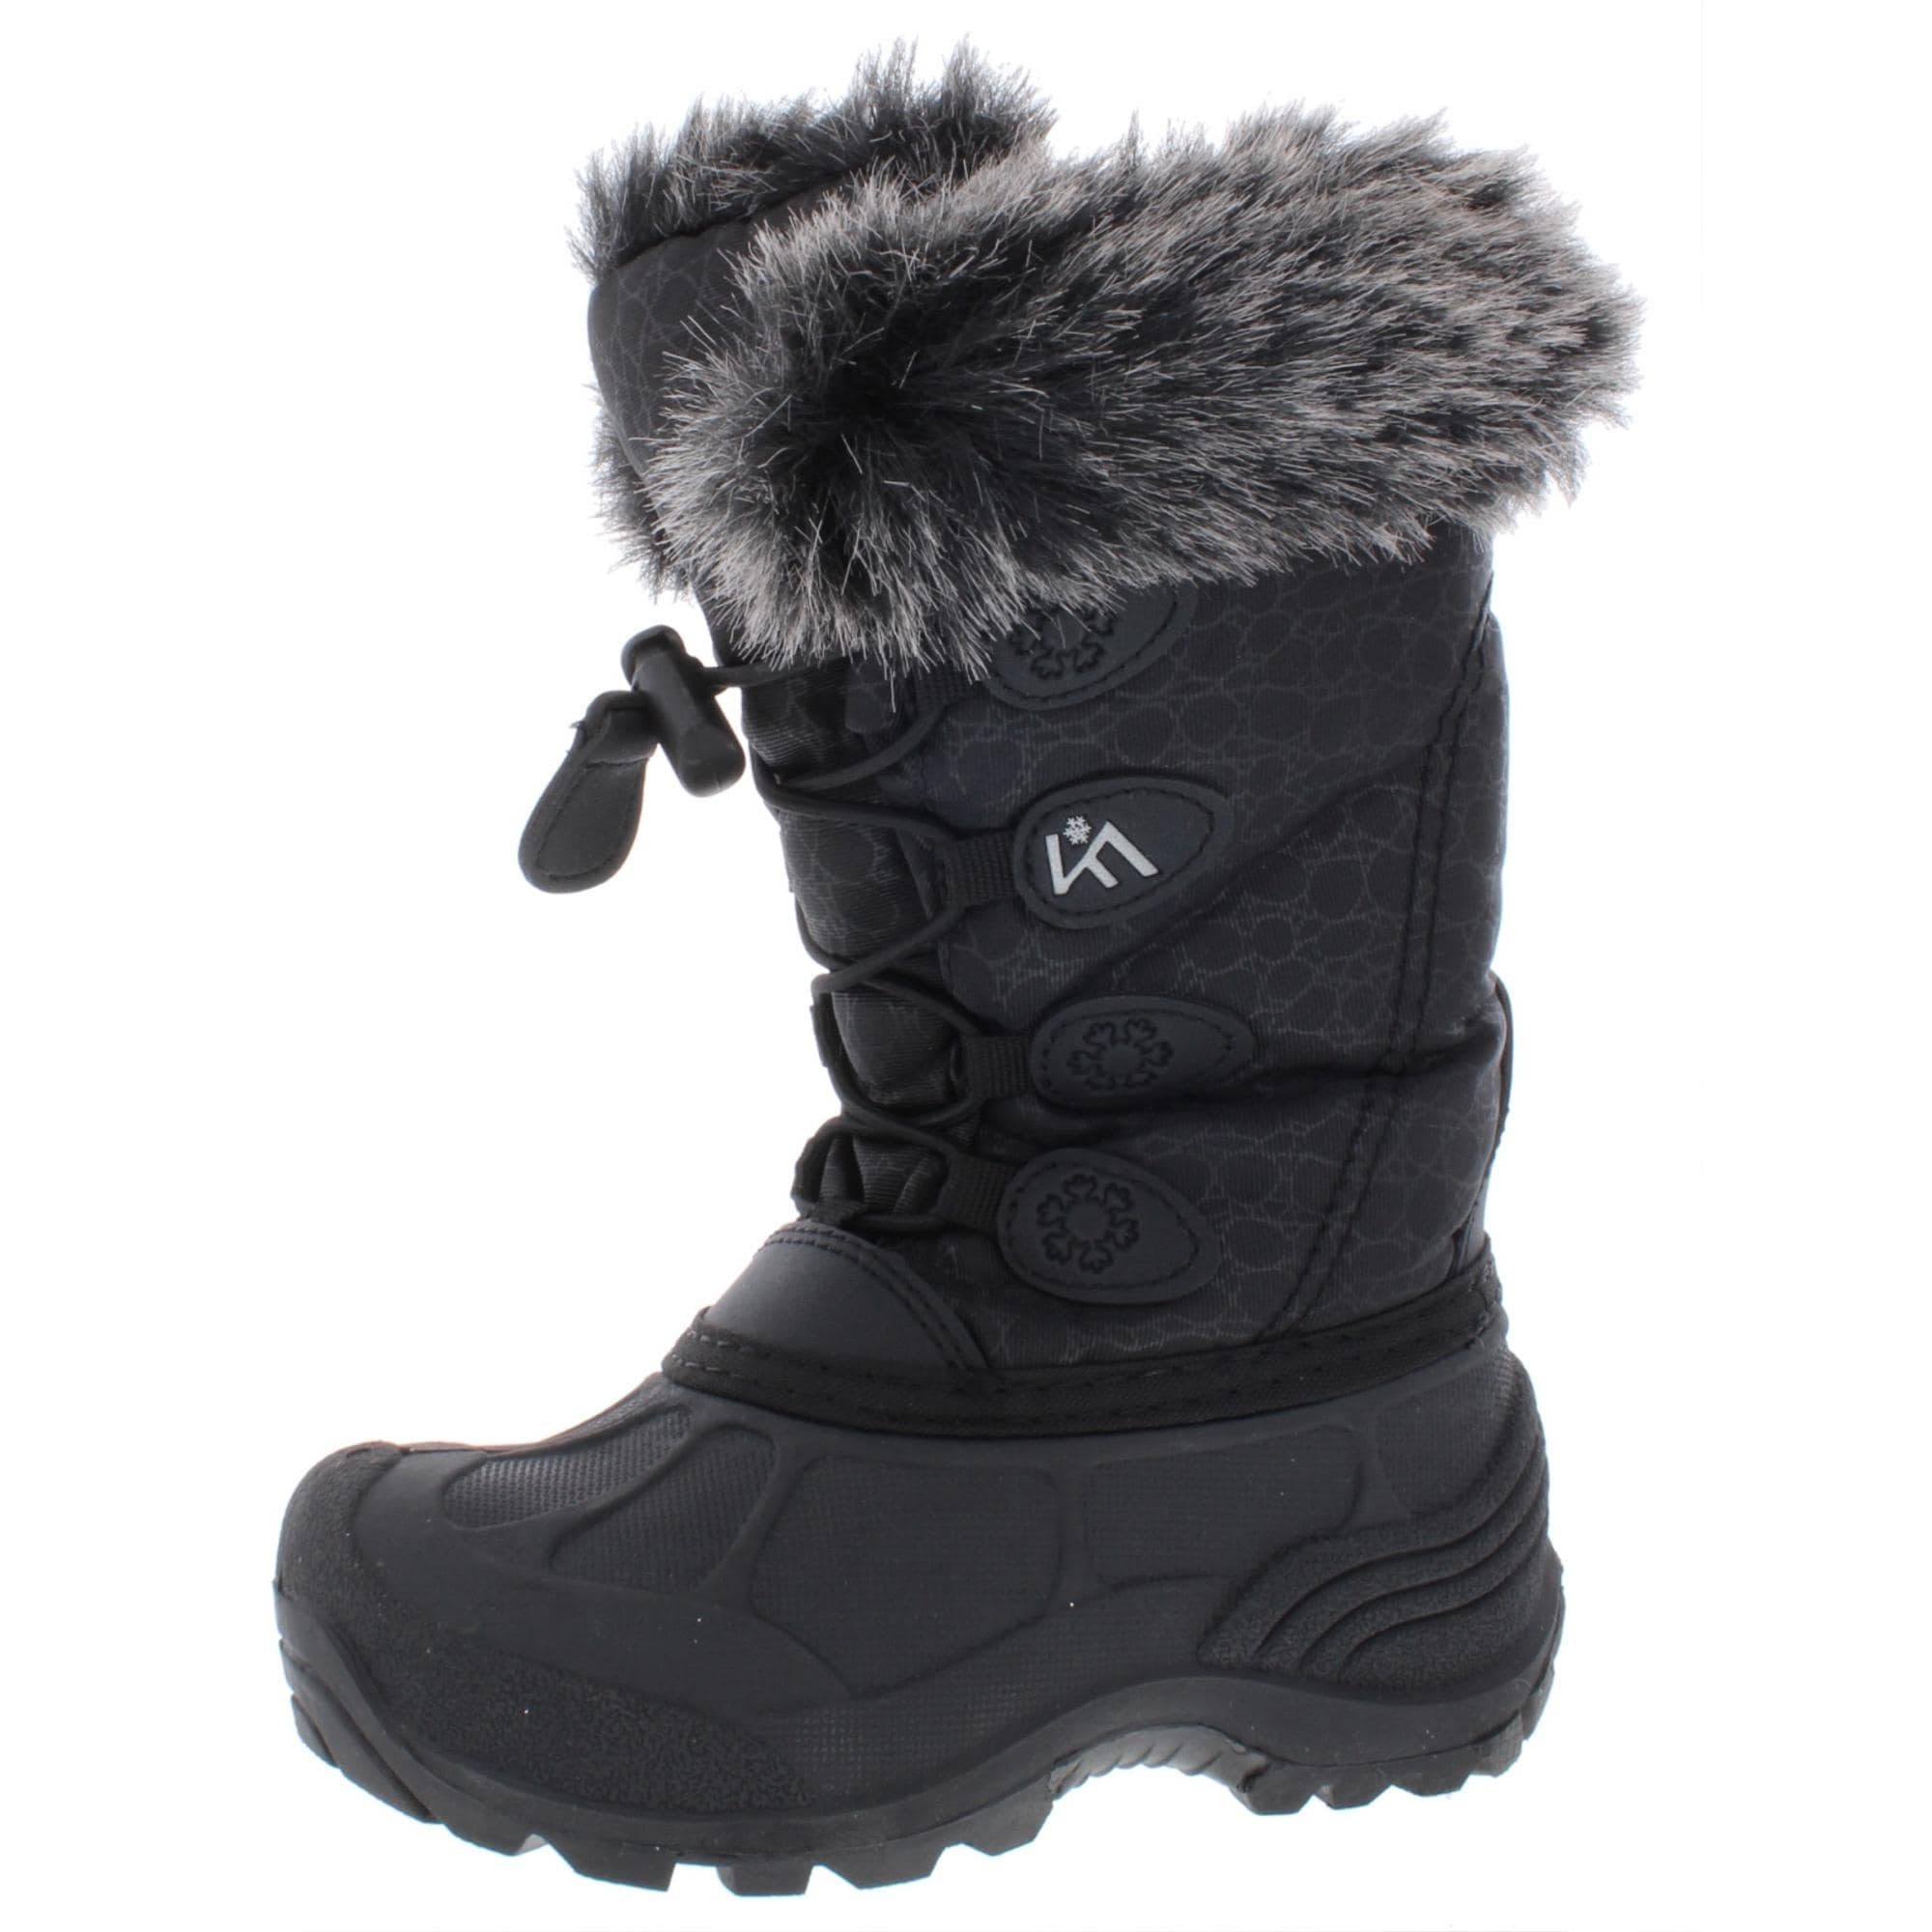 girls snow boots size 11